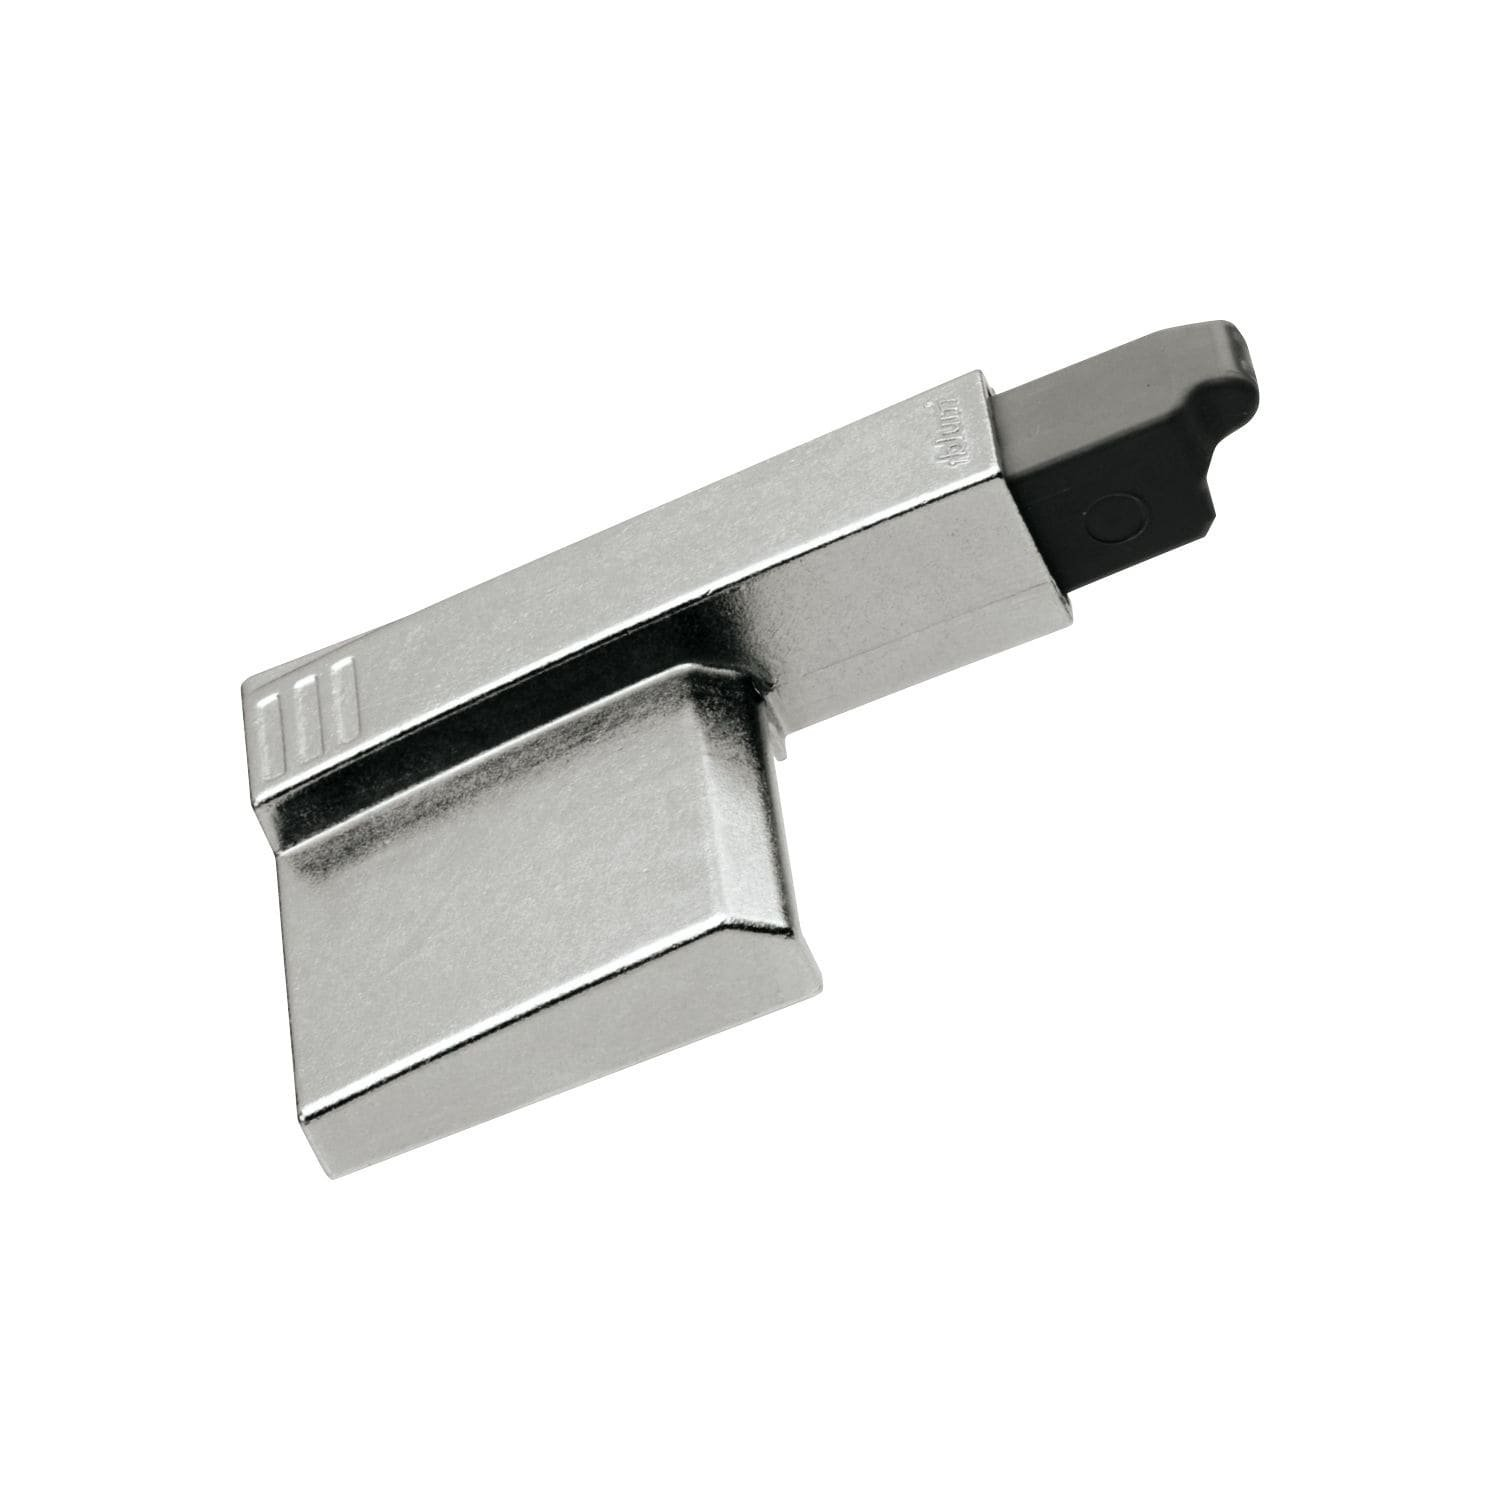 Blum 973A6000 BLUMOTION Soft Closing Mechanism for 170 Degree CLIP Top and CLIP Hinges Nickel by Blum English Manual